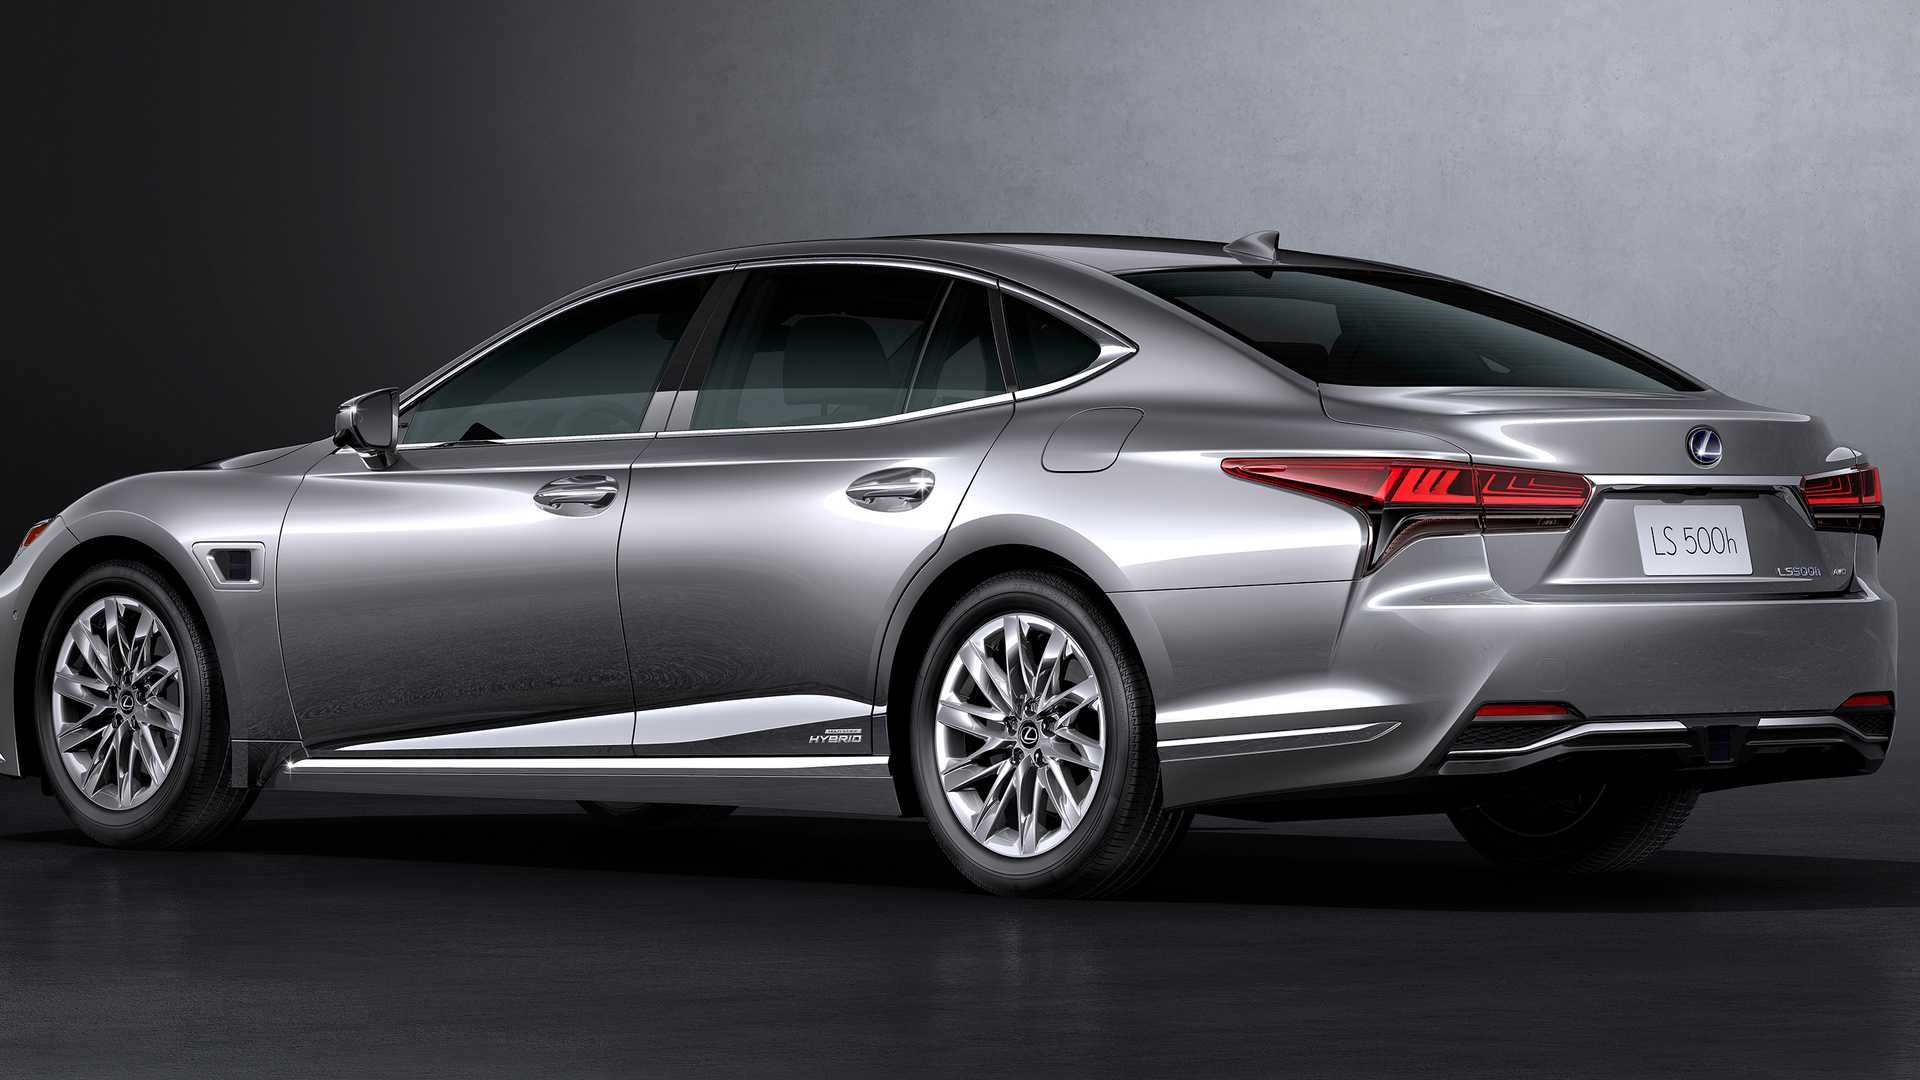 3 Lexus LS arrives with new looks, self-driving tech in 3